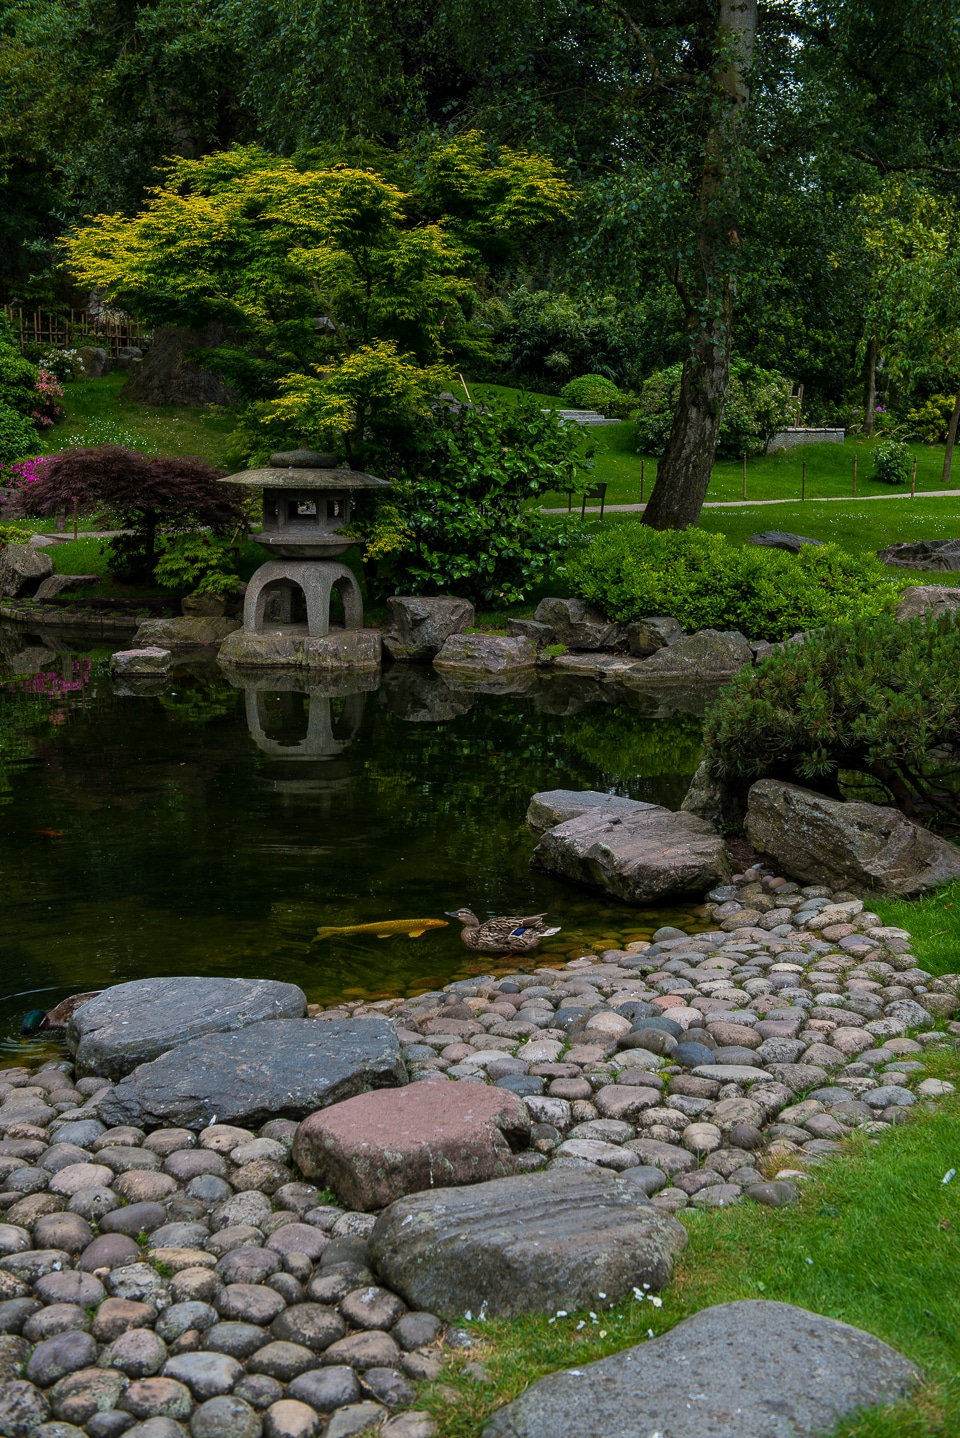 Kyoto Garden, Holland Park, Kensington, London